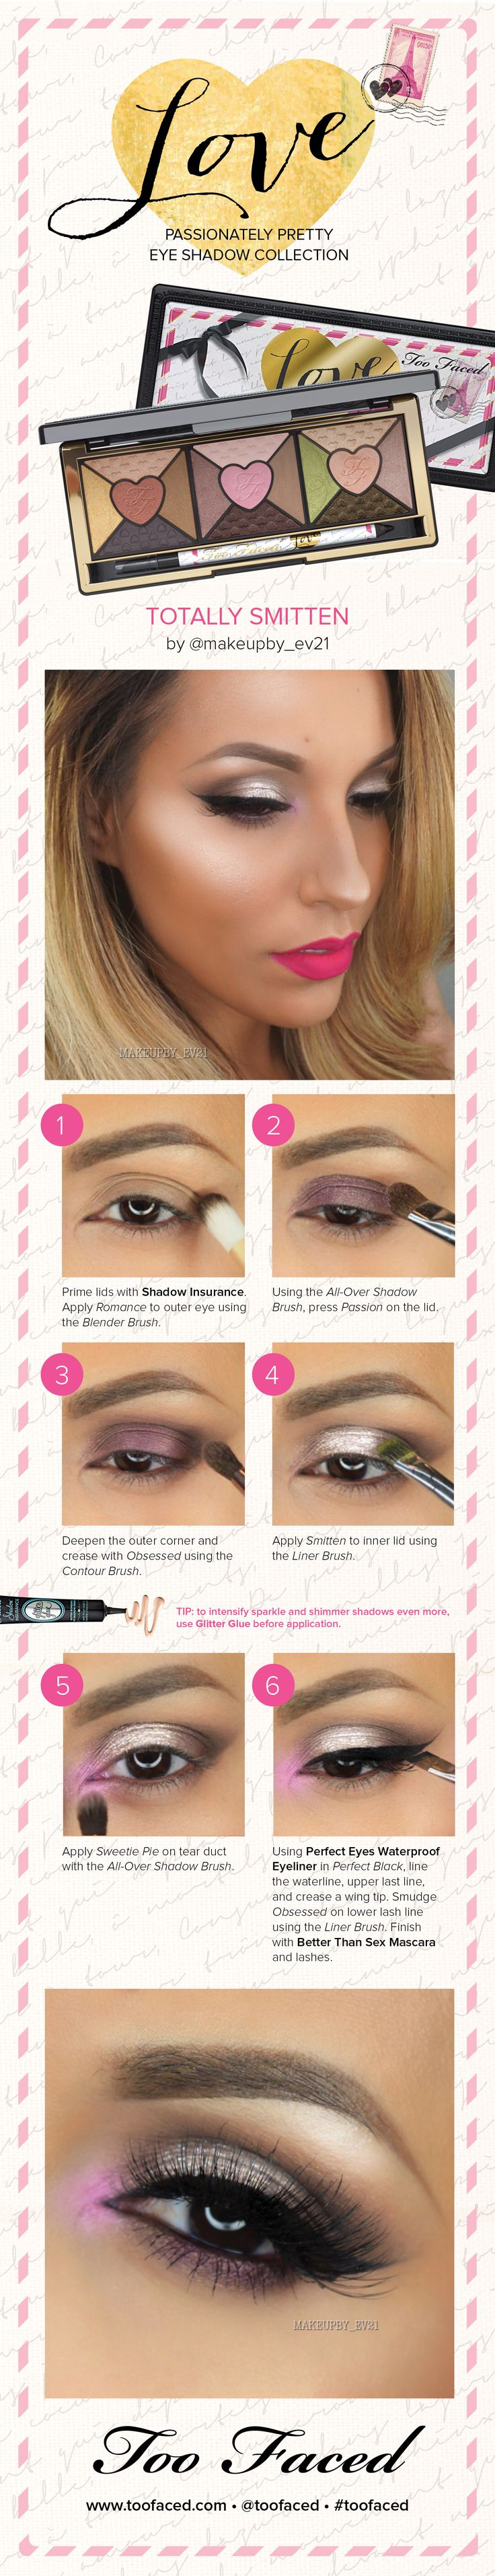 Check out this Sephora-exclusive look from blogger Evelin using the new #TooFaced Love Palette. #Sephora #HowTo